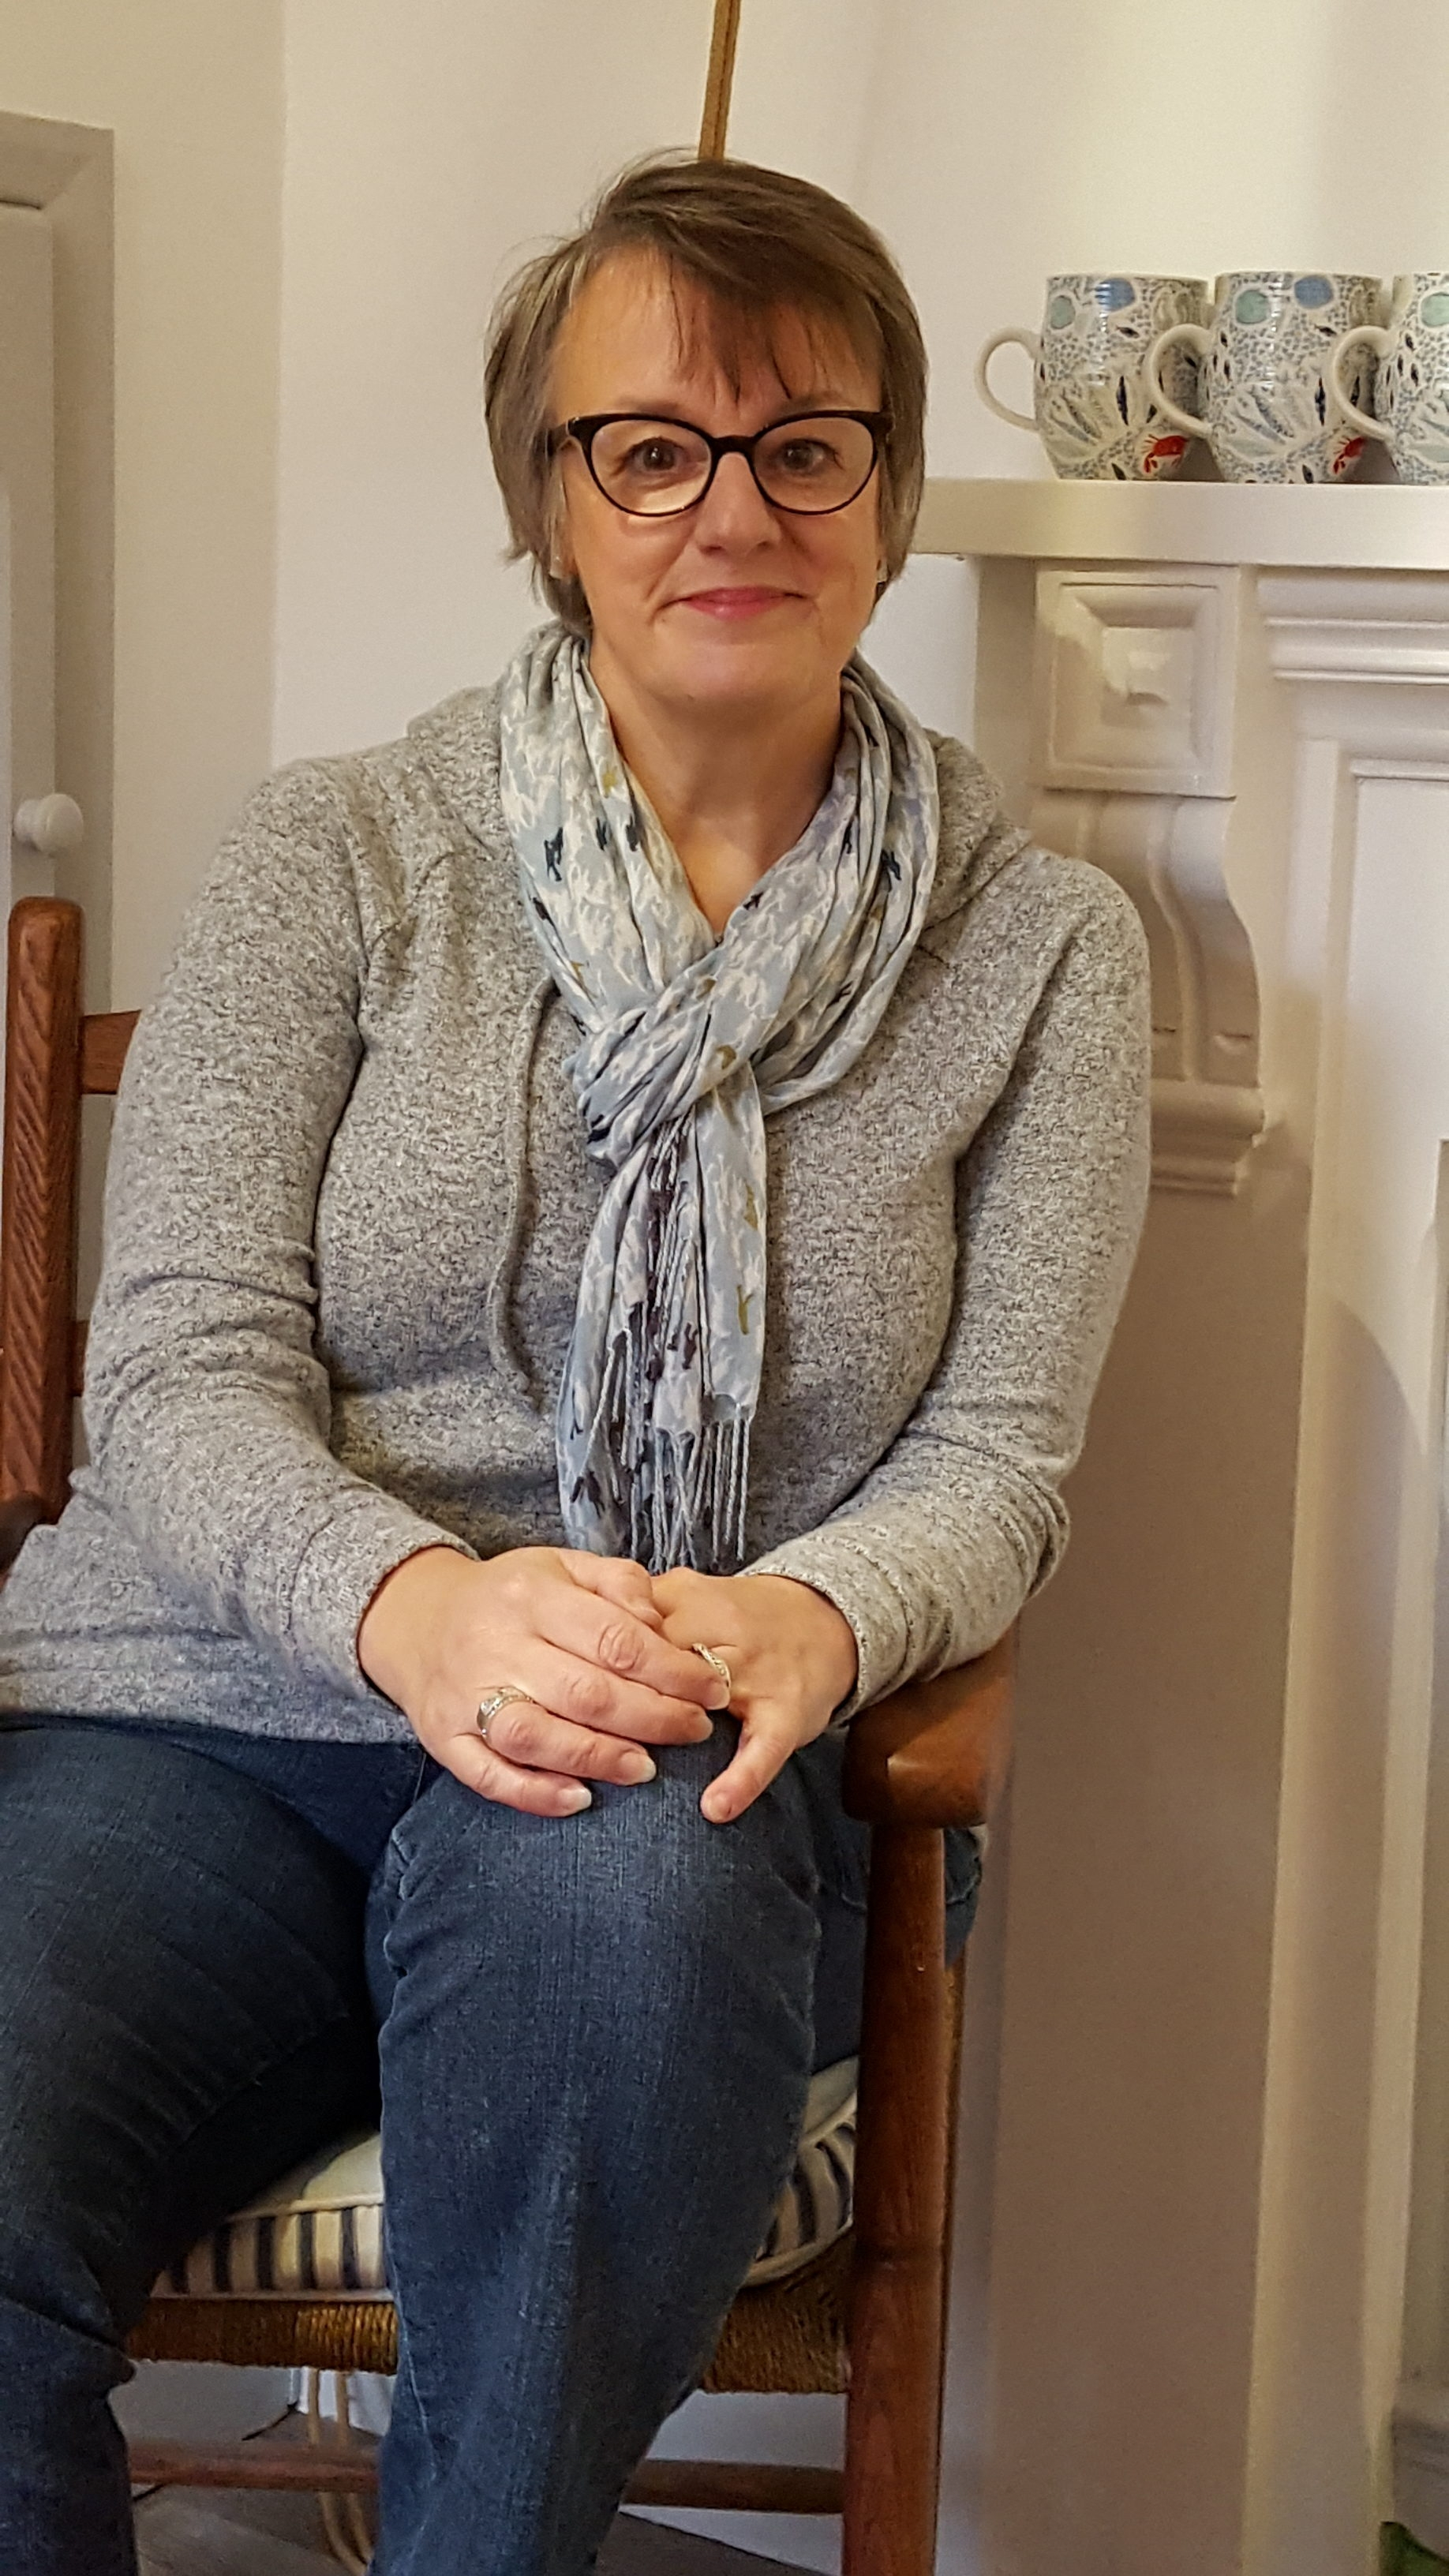 Lesley - Clutter Therapist